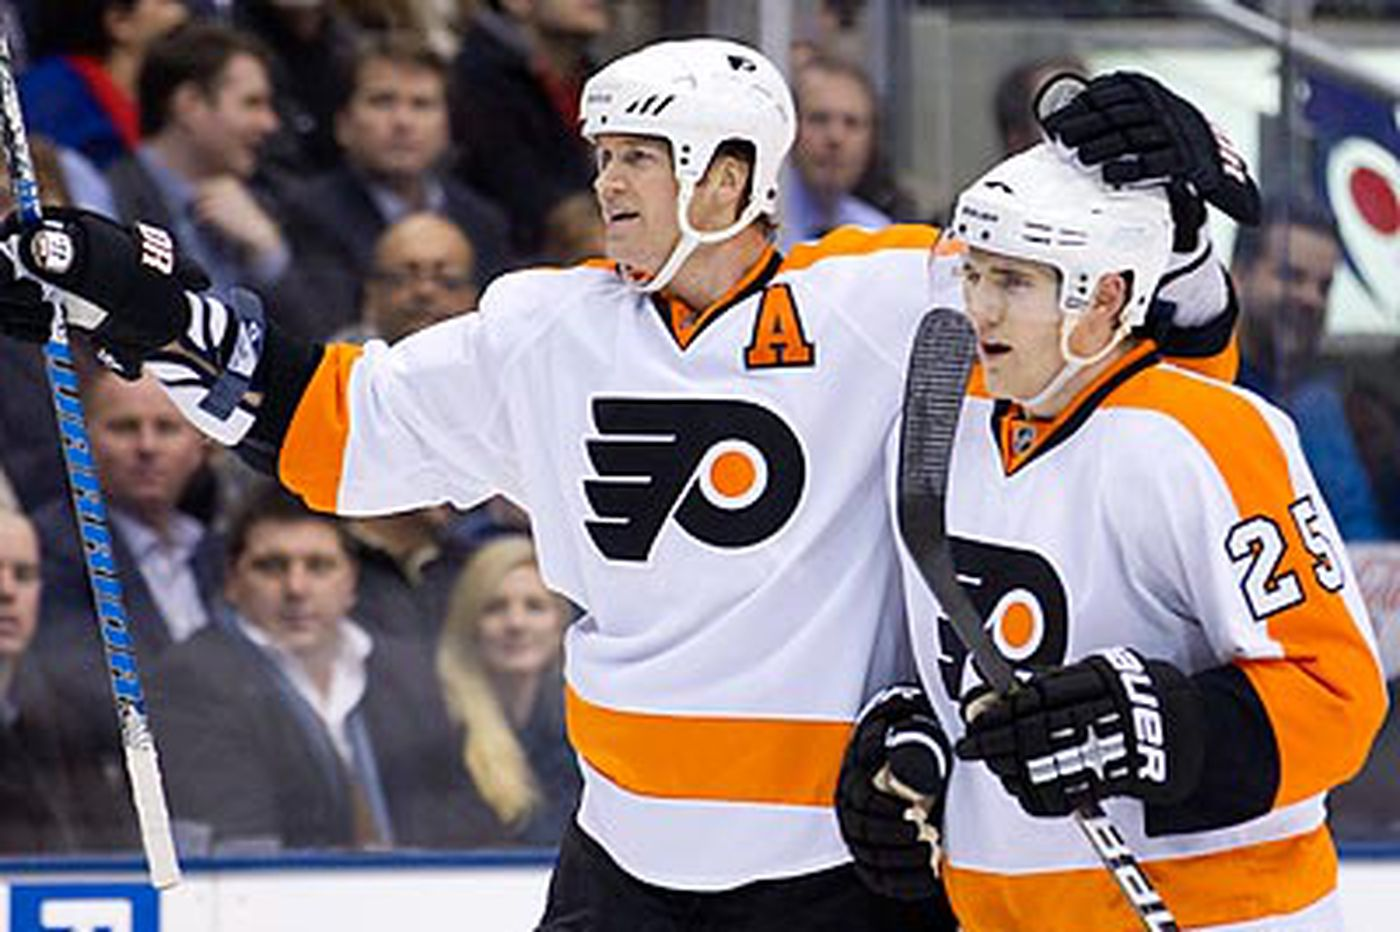 Flyers' Pronger to miss time with foot injury